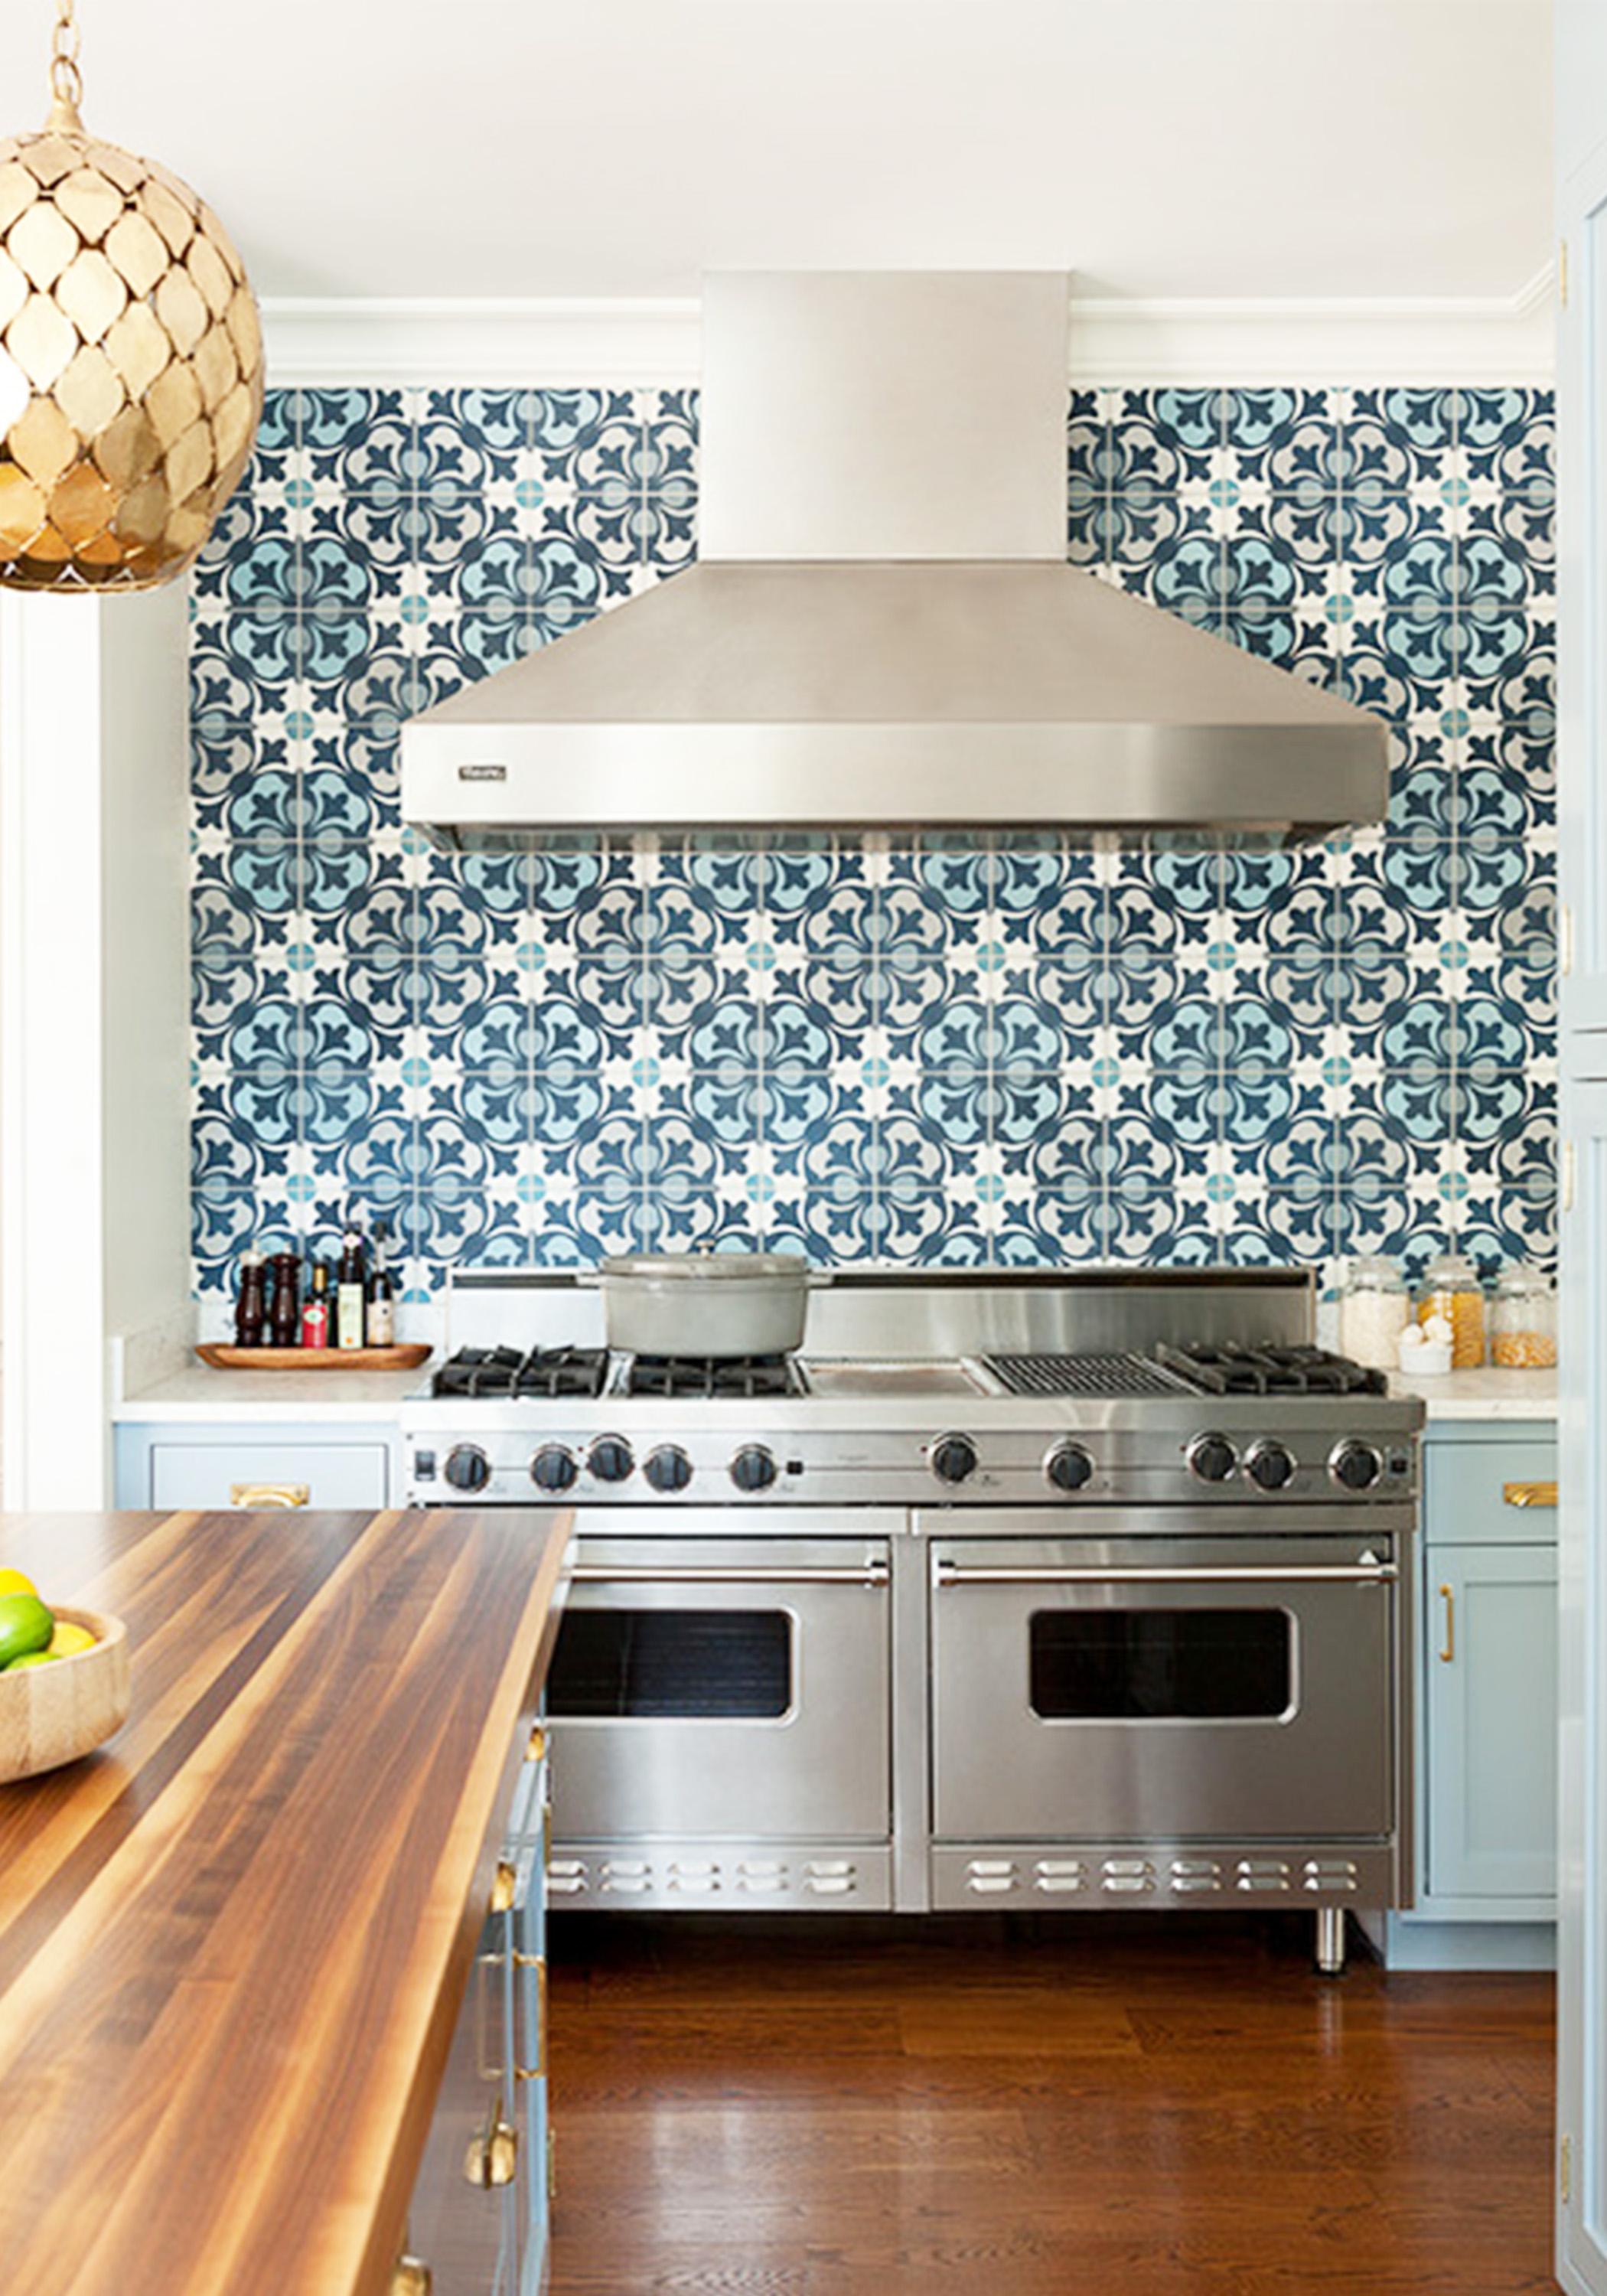 Preferred 17 Tempting Tile Backsplash Ideas for Behind the Stove | COCOCOZY NY39